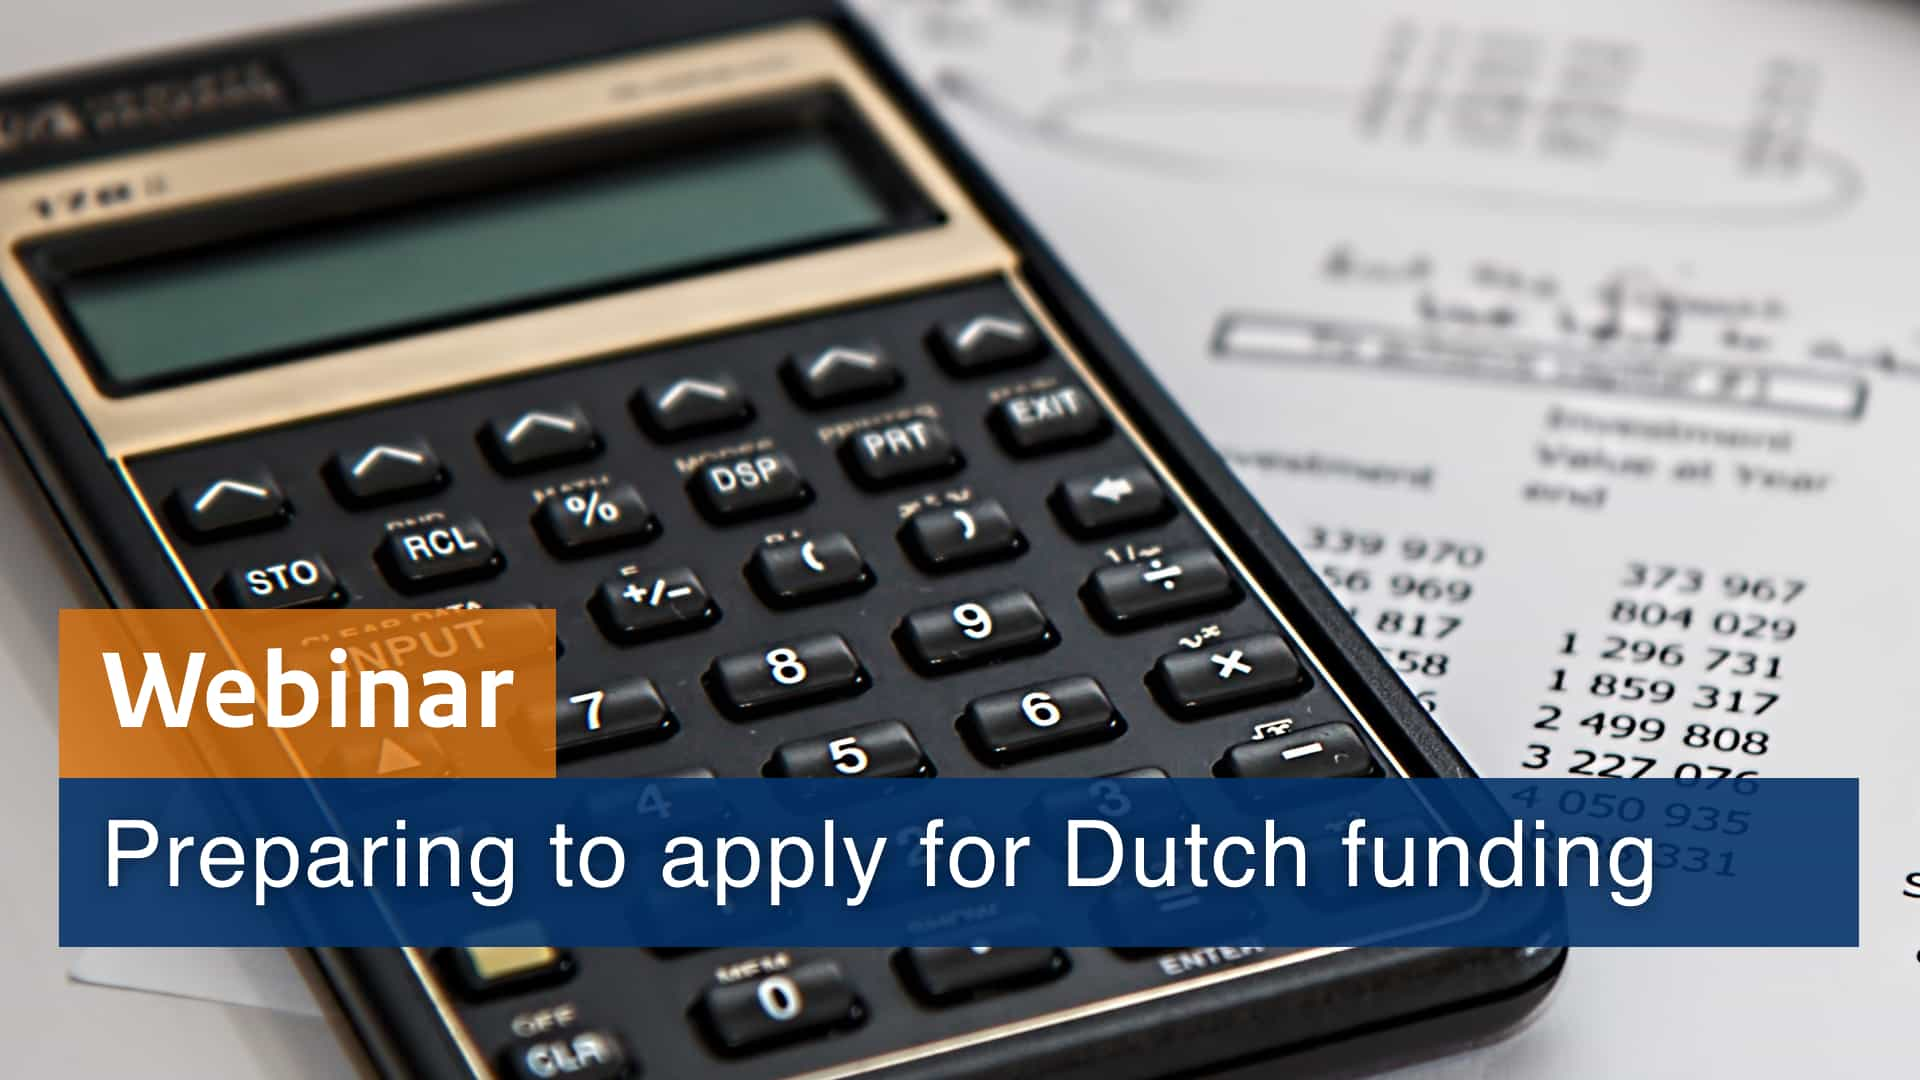 Preparing to apply for Dutch funding